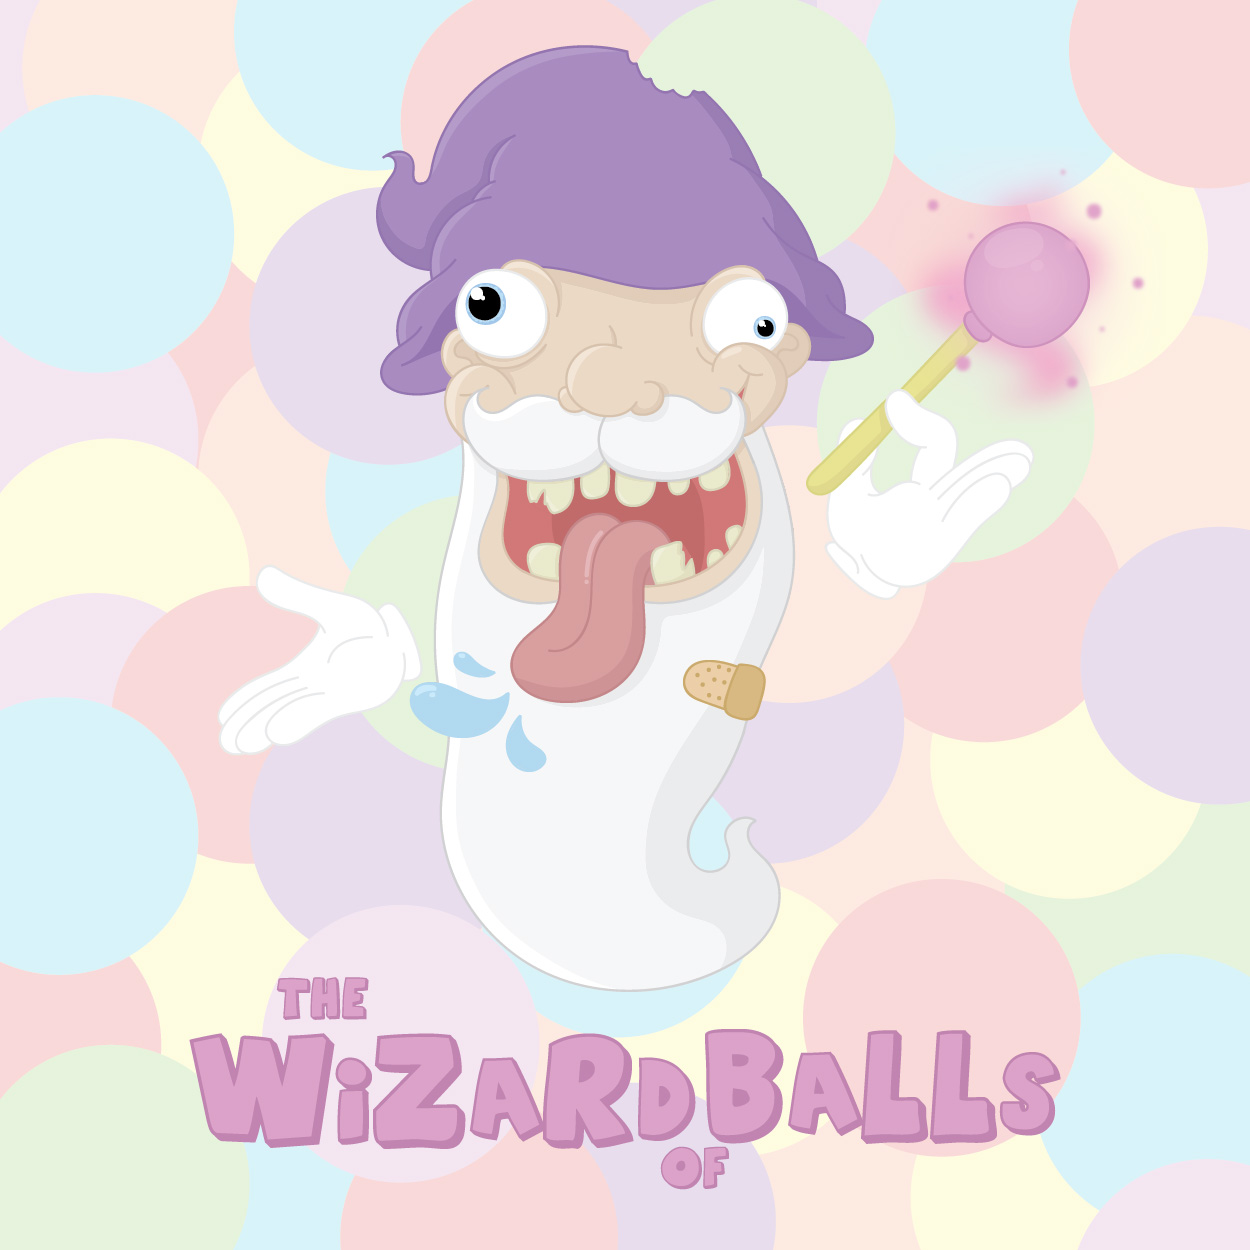 the wizard of balls